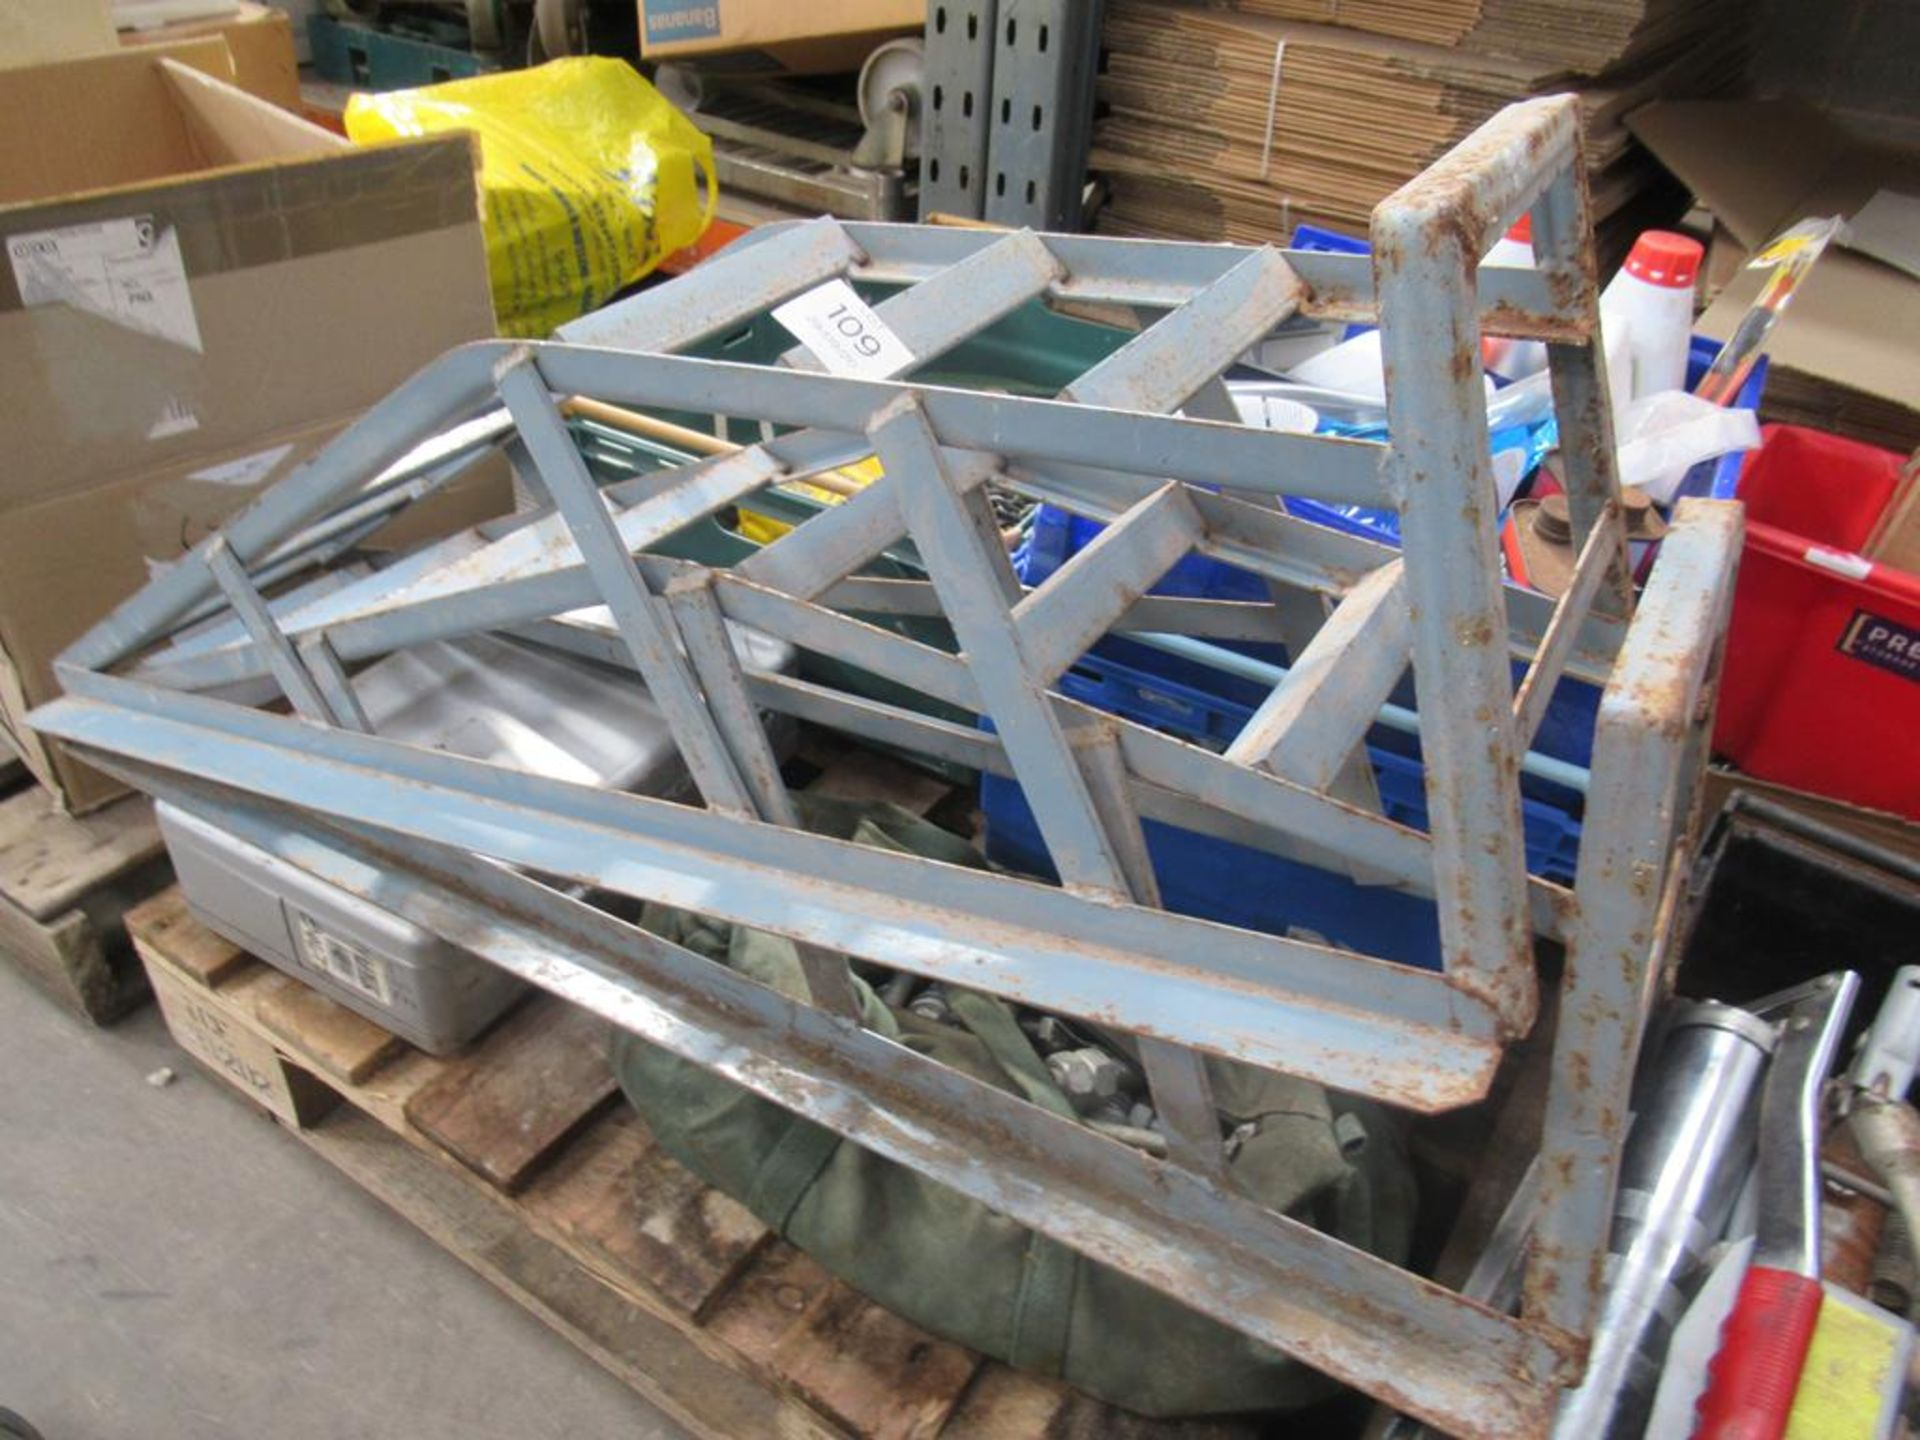 Pallet of automotive equipment/consumables - Image 4 of 9